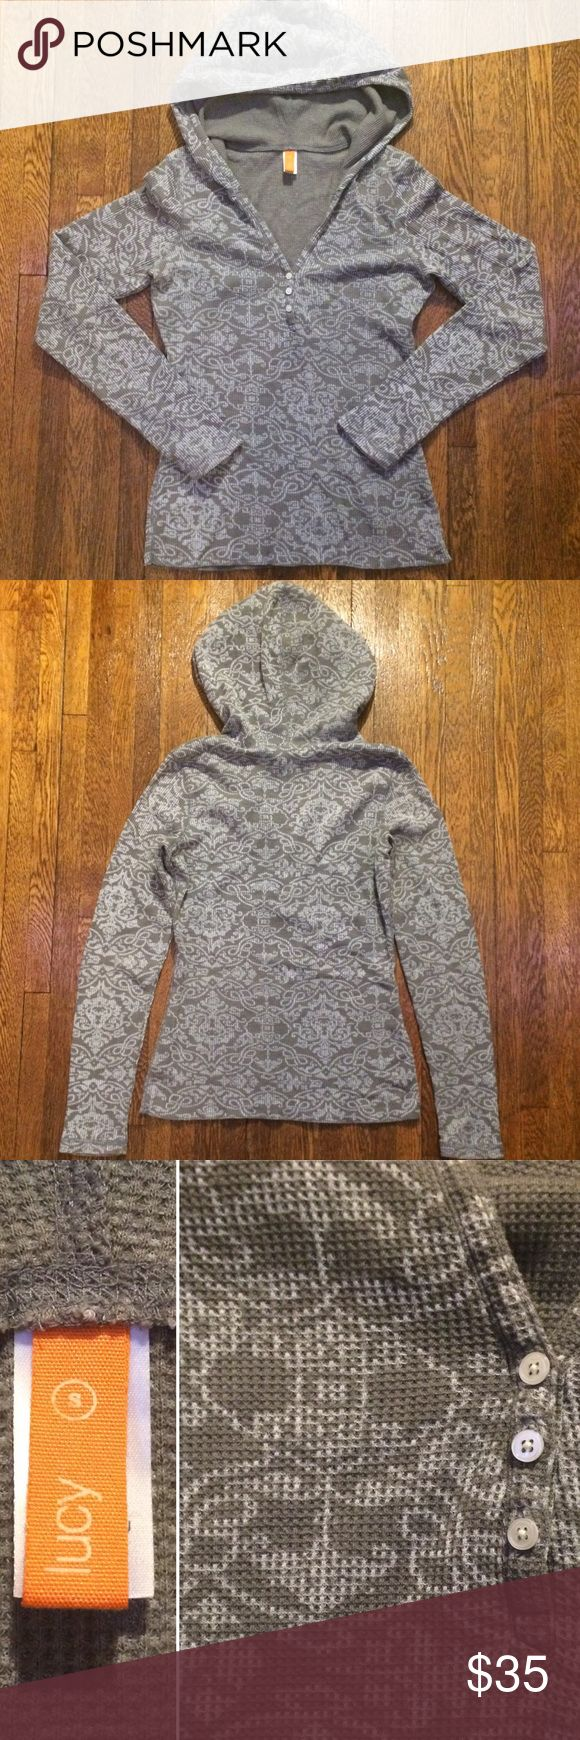 Lucy Thermal Hoodie Cute grey thermal from Lucy. It has a fun pattern throughout and a hood. In excellent used condition. Make me an offer. 25% discount on bundles of 2 or more. Lucy Tops Sweatshirts & Hoodies